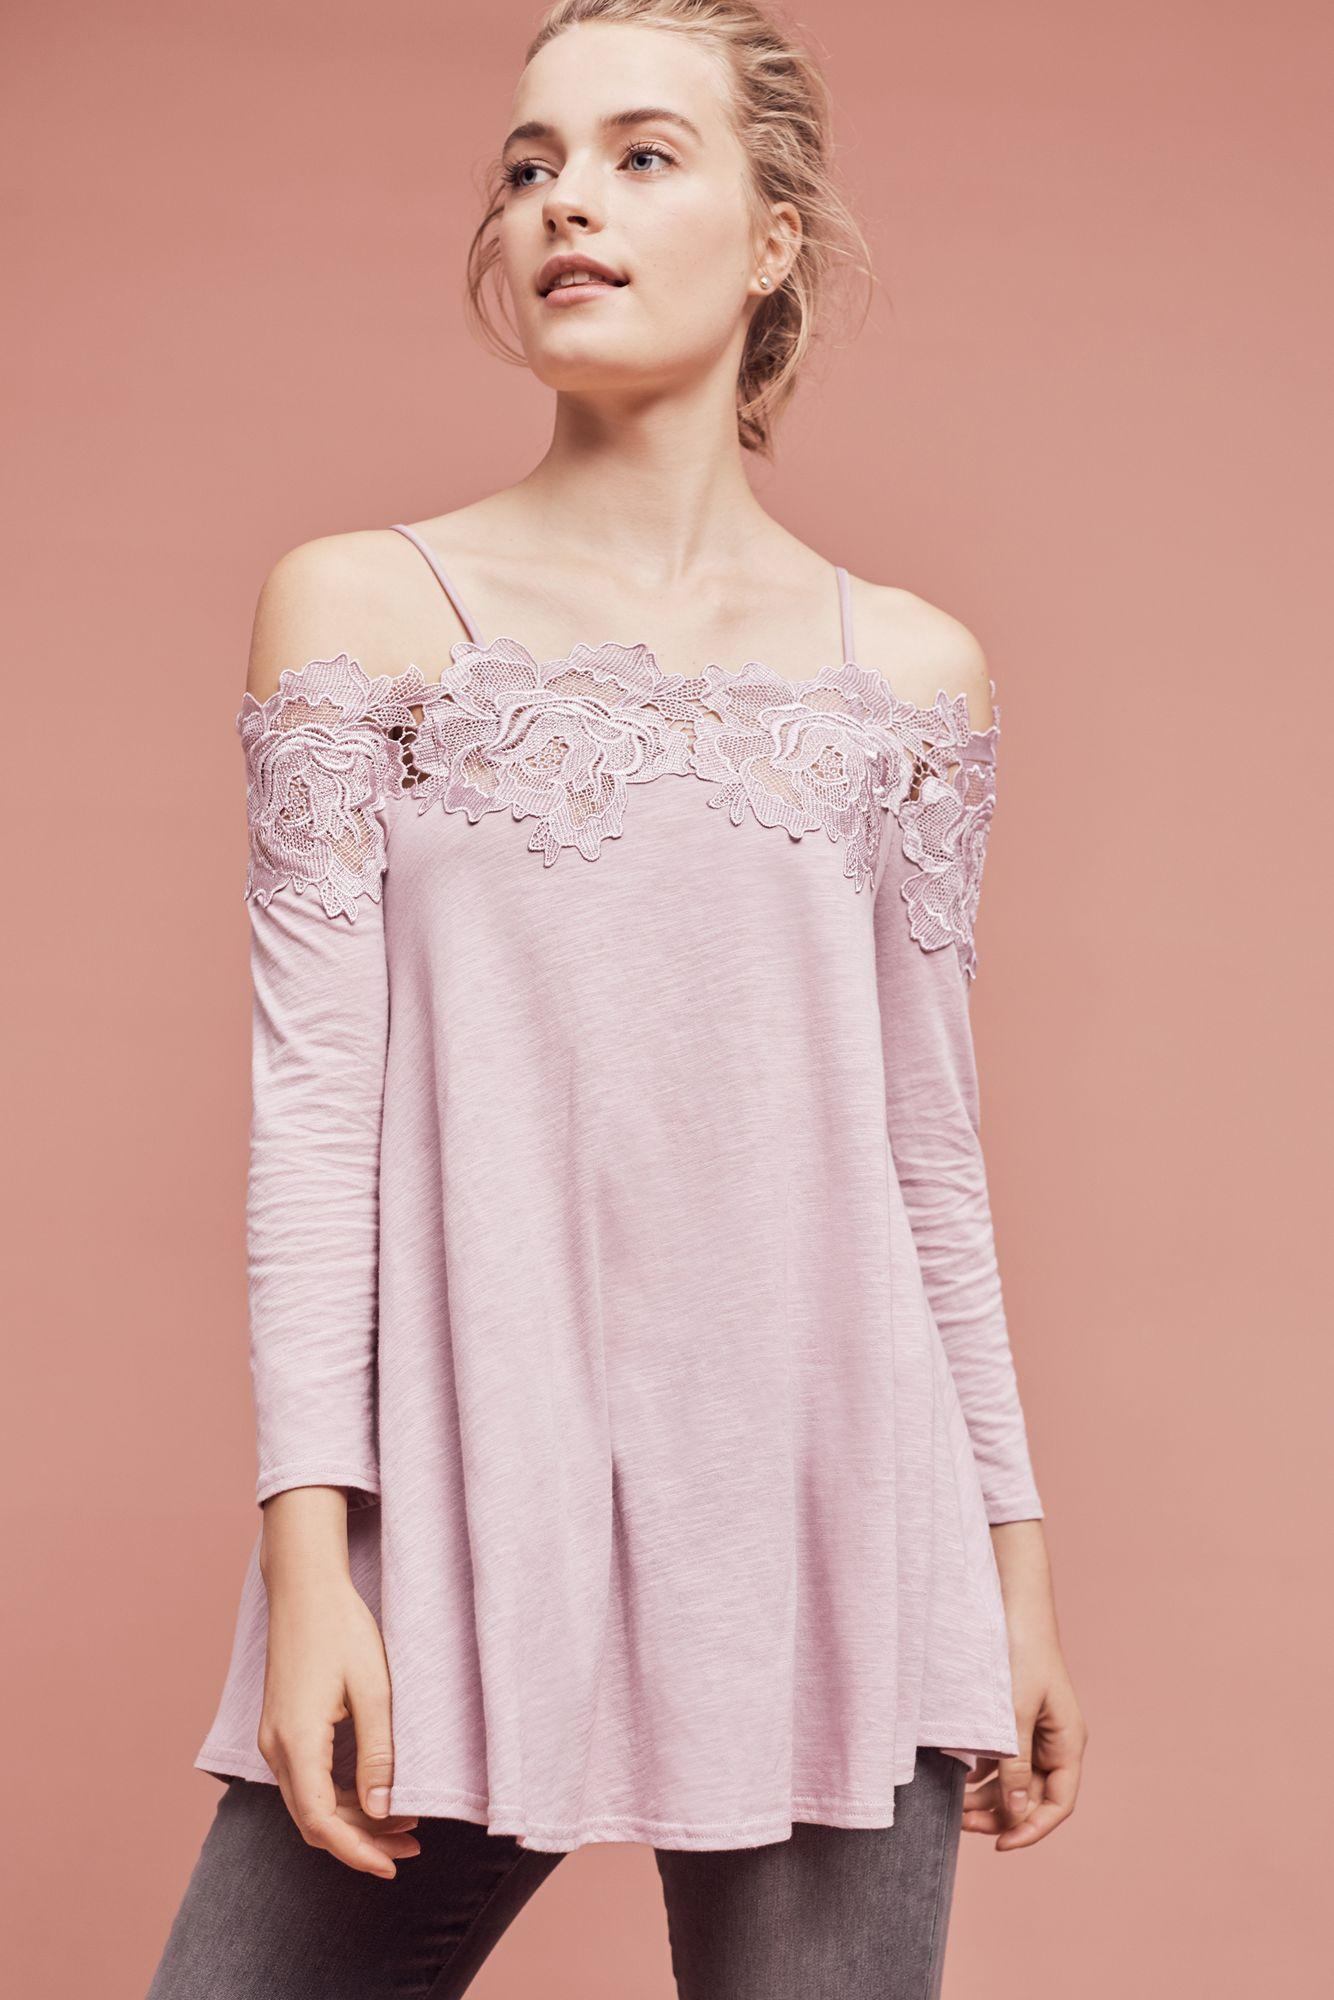 cd98f134e4c Meadow Rue Laceline Off-the-shoulder Top in Pink - Lyst